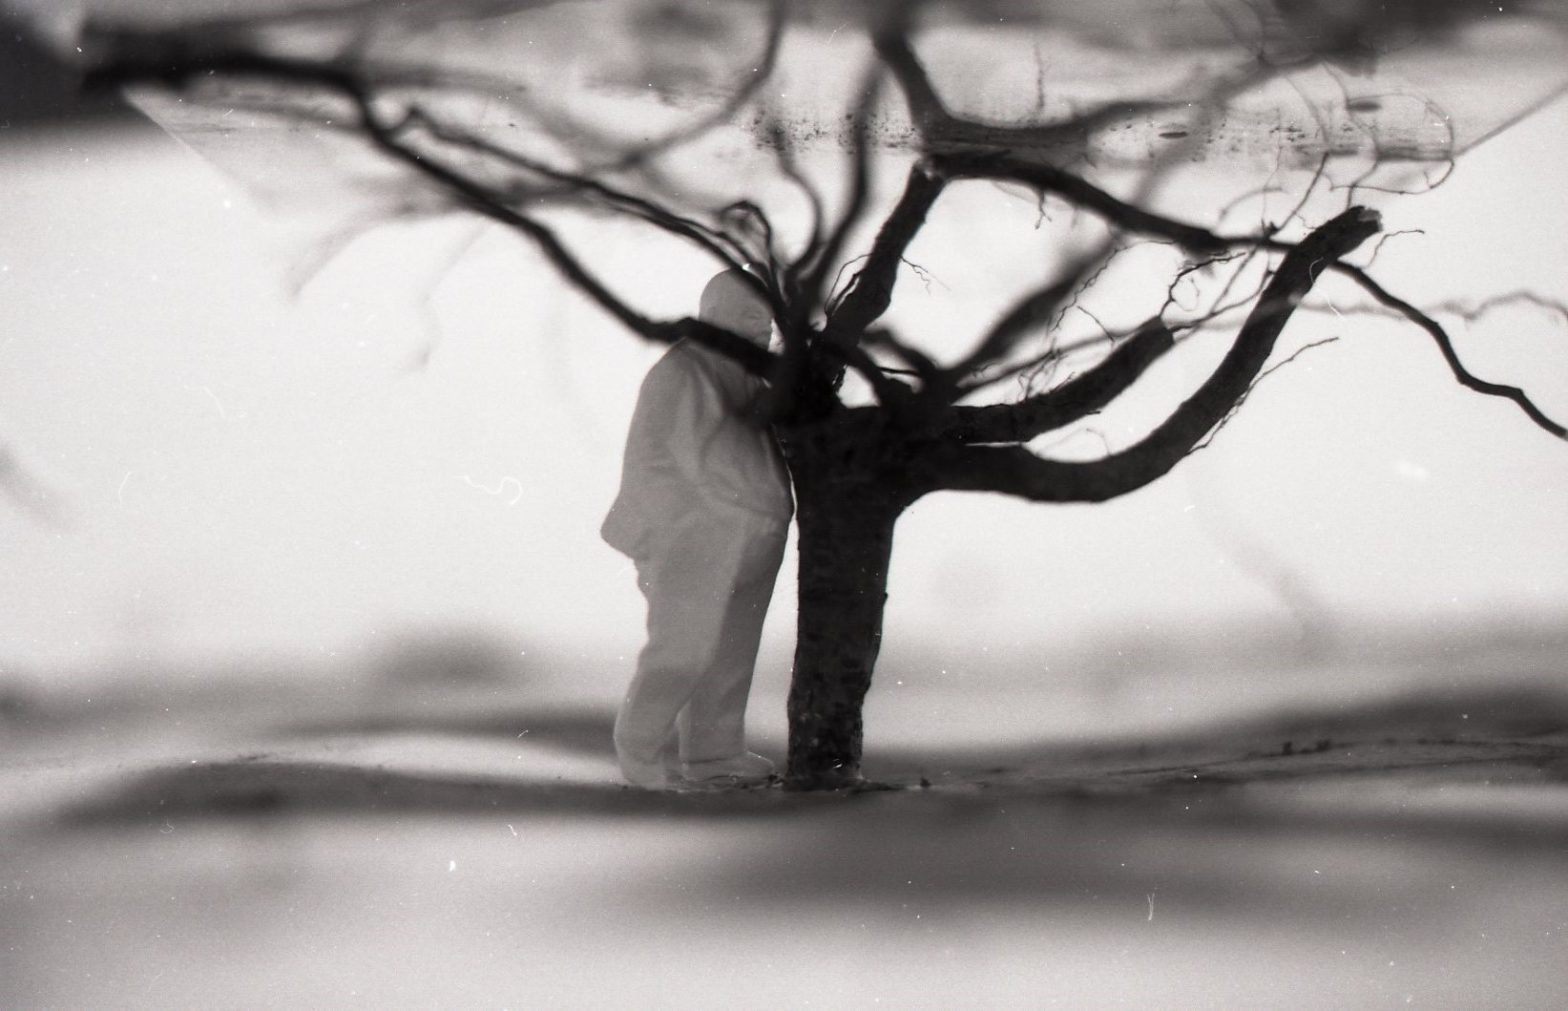 A tree upside down in the ground with a figure beside